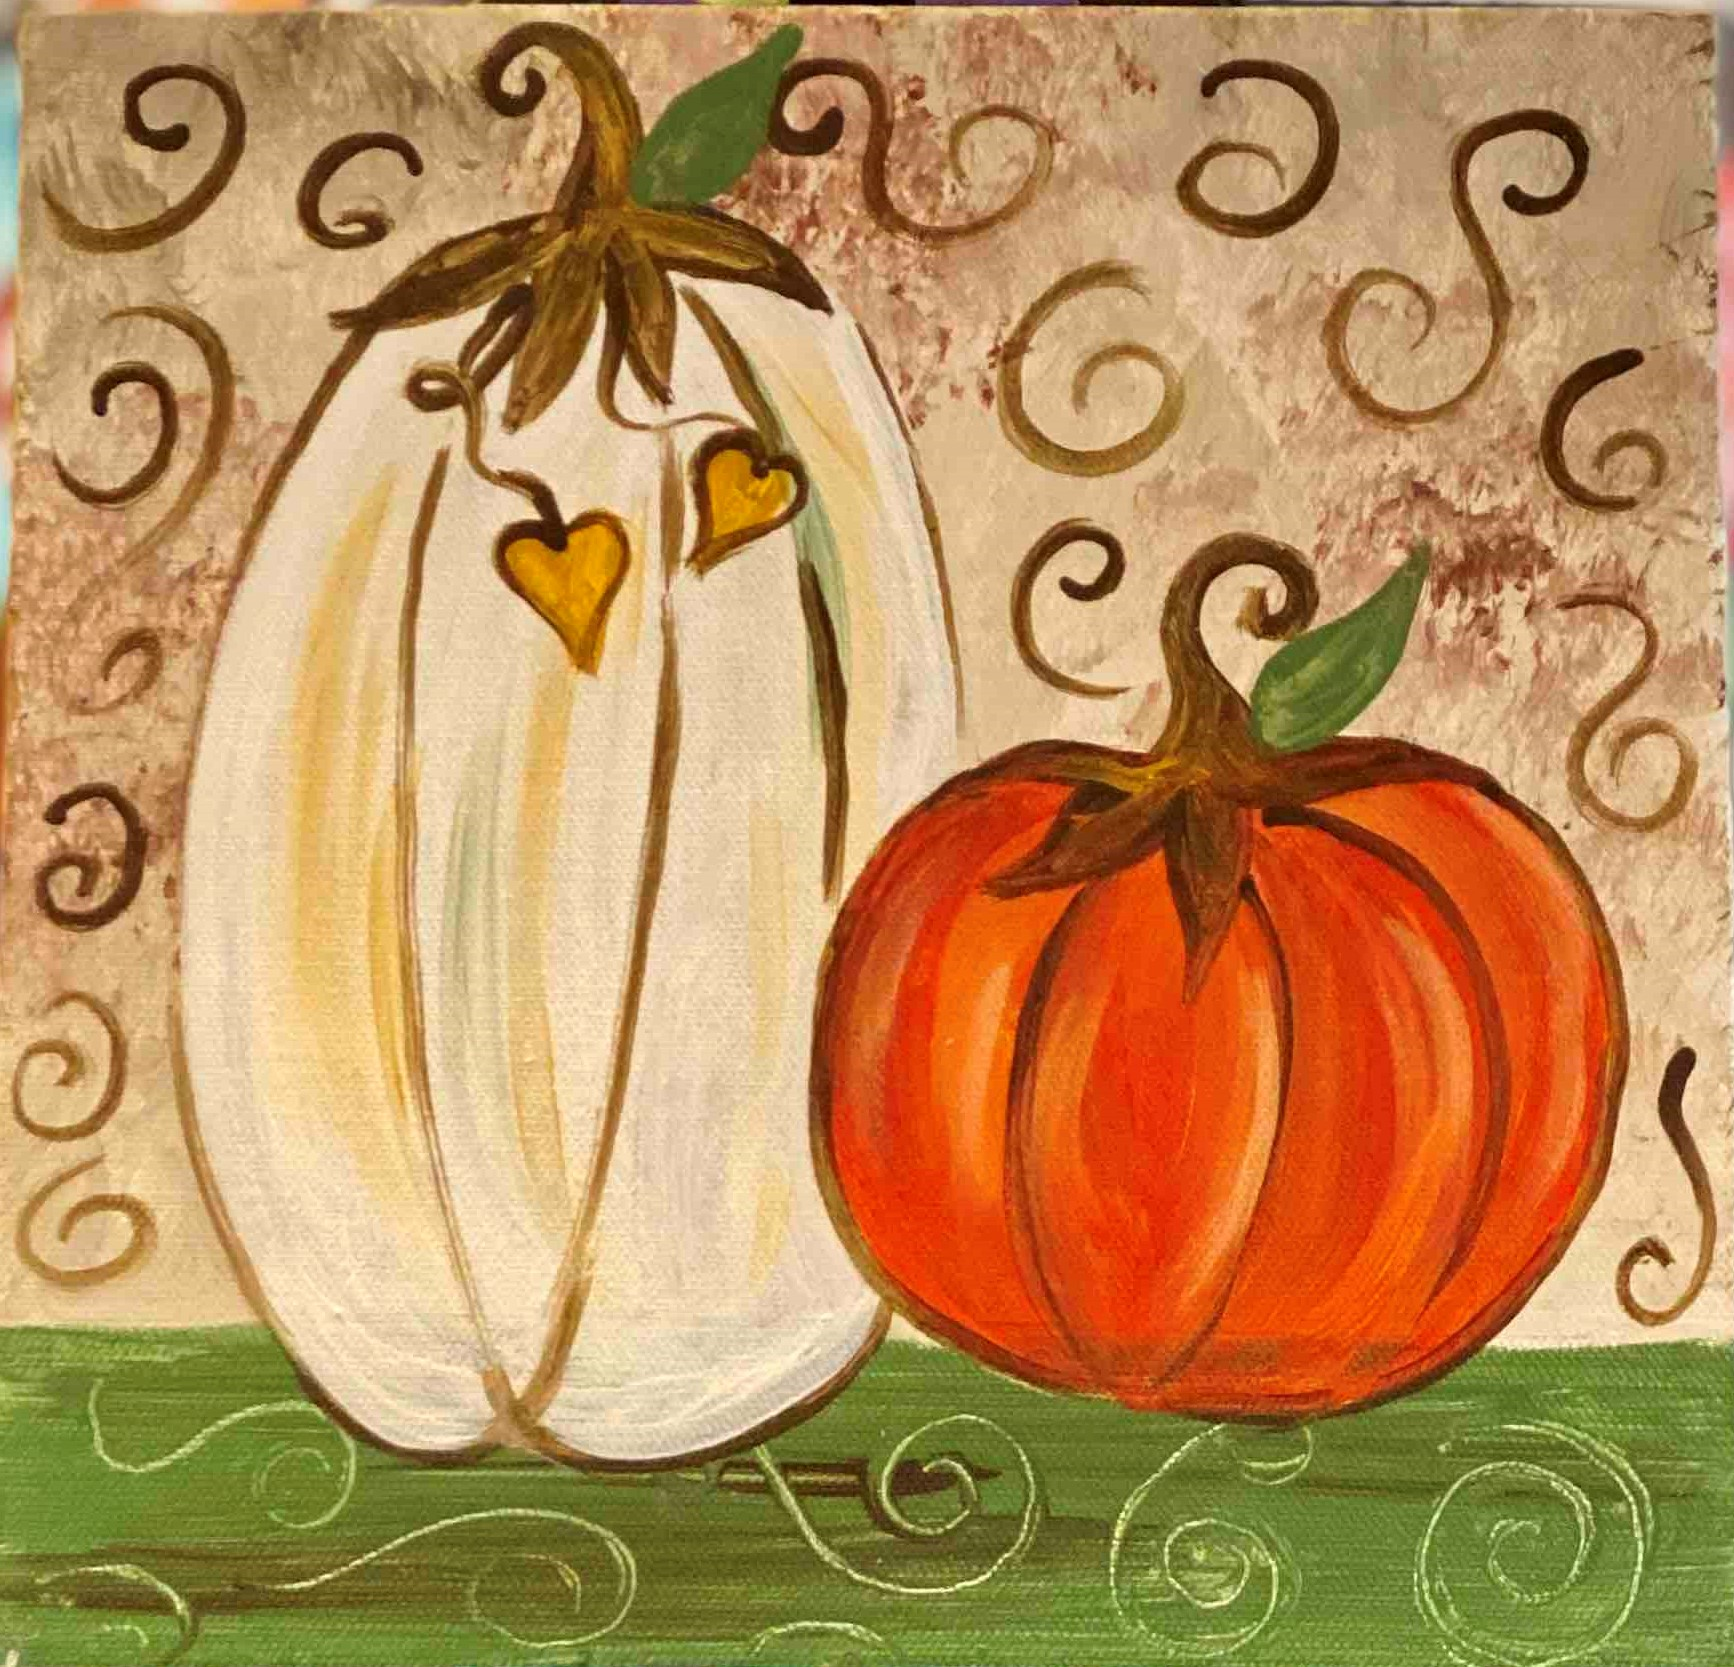 https://studio.pinotspalette.com/brandon/images/take%20home%20kit%20pumpkin%20spice.jpg